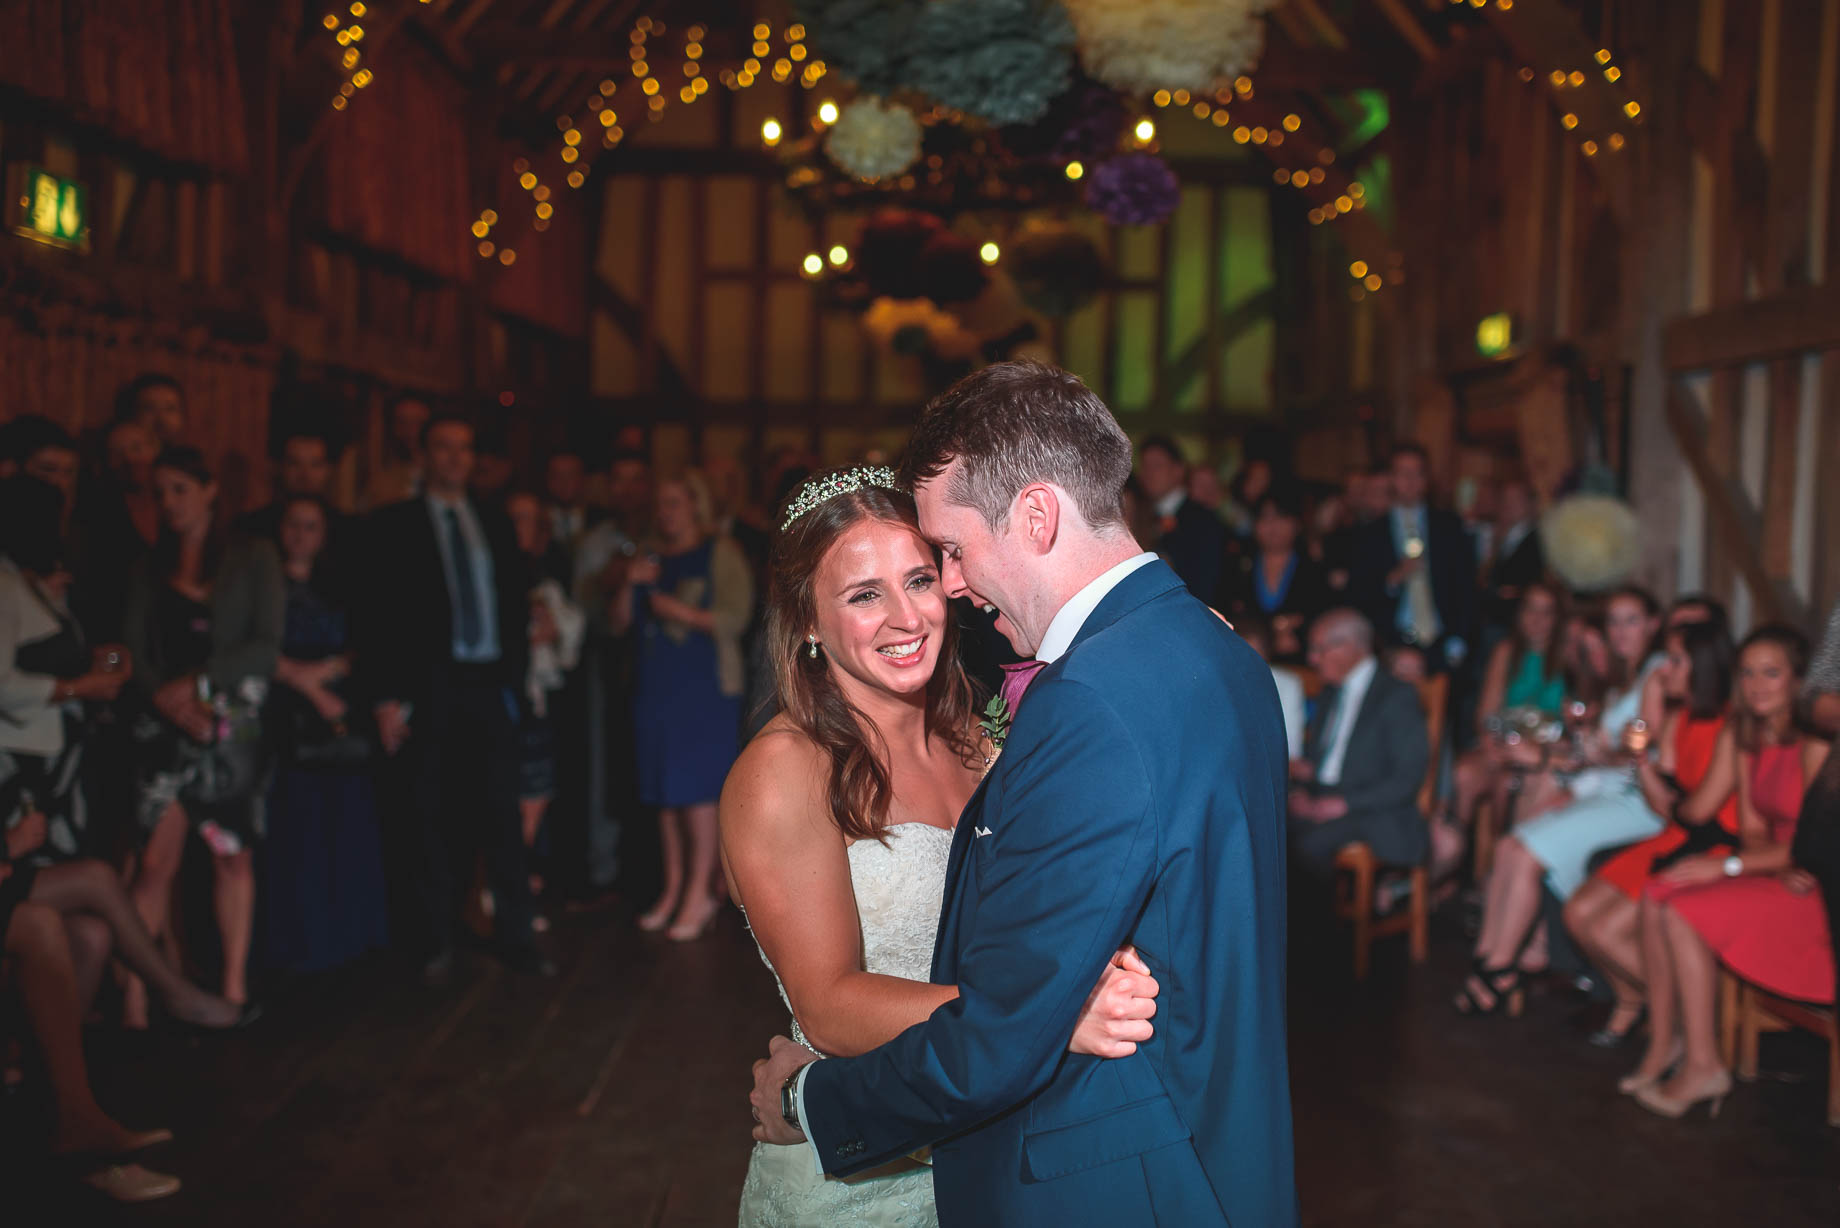 Gate Street Barn wedding photography - Guy Collier - Claire and Andy (188 of 192)